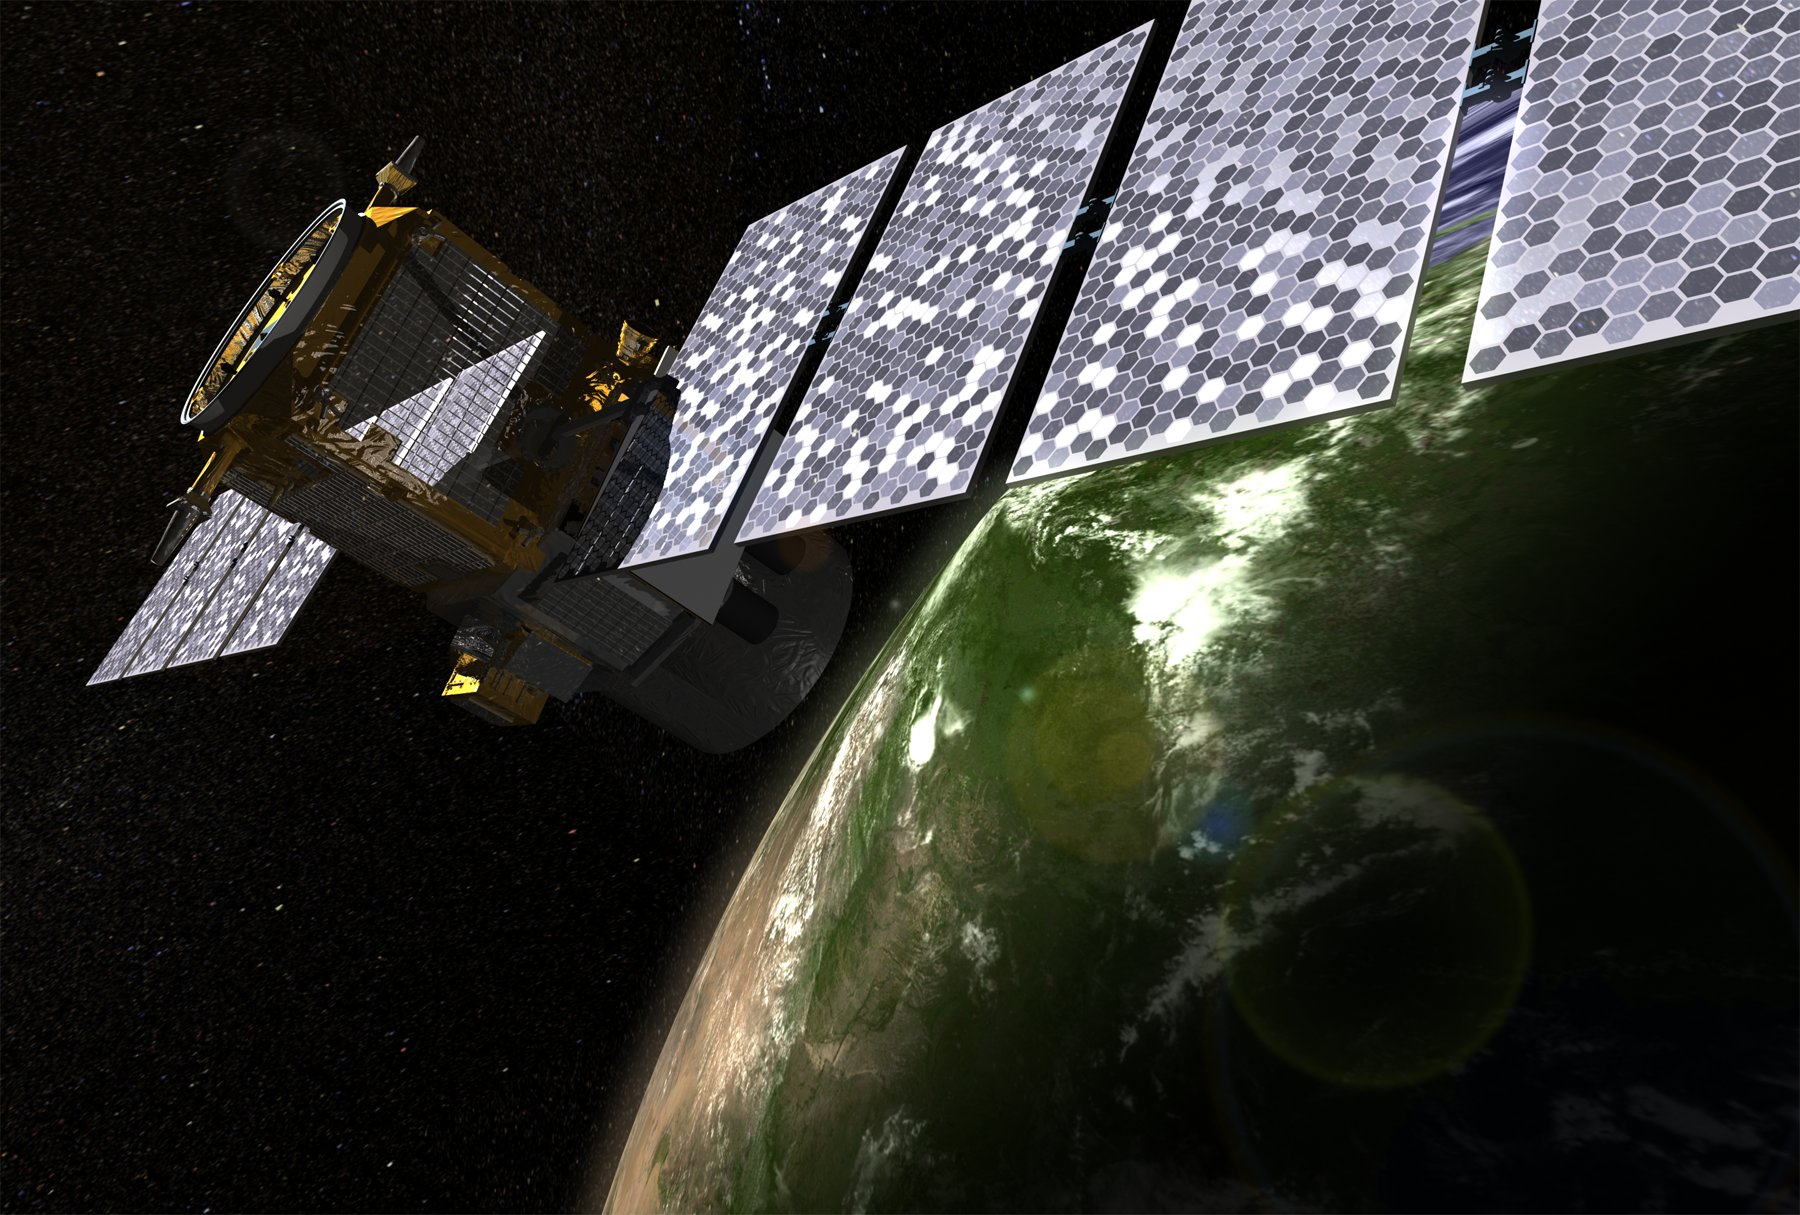 calipso spacecraft images - photo #8